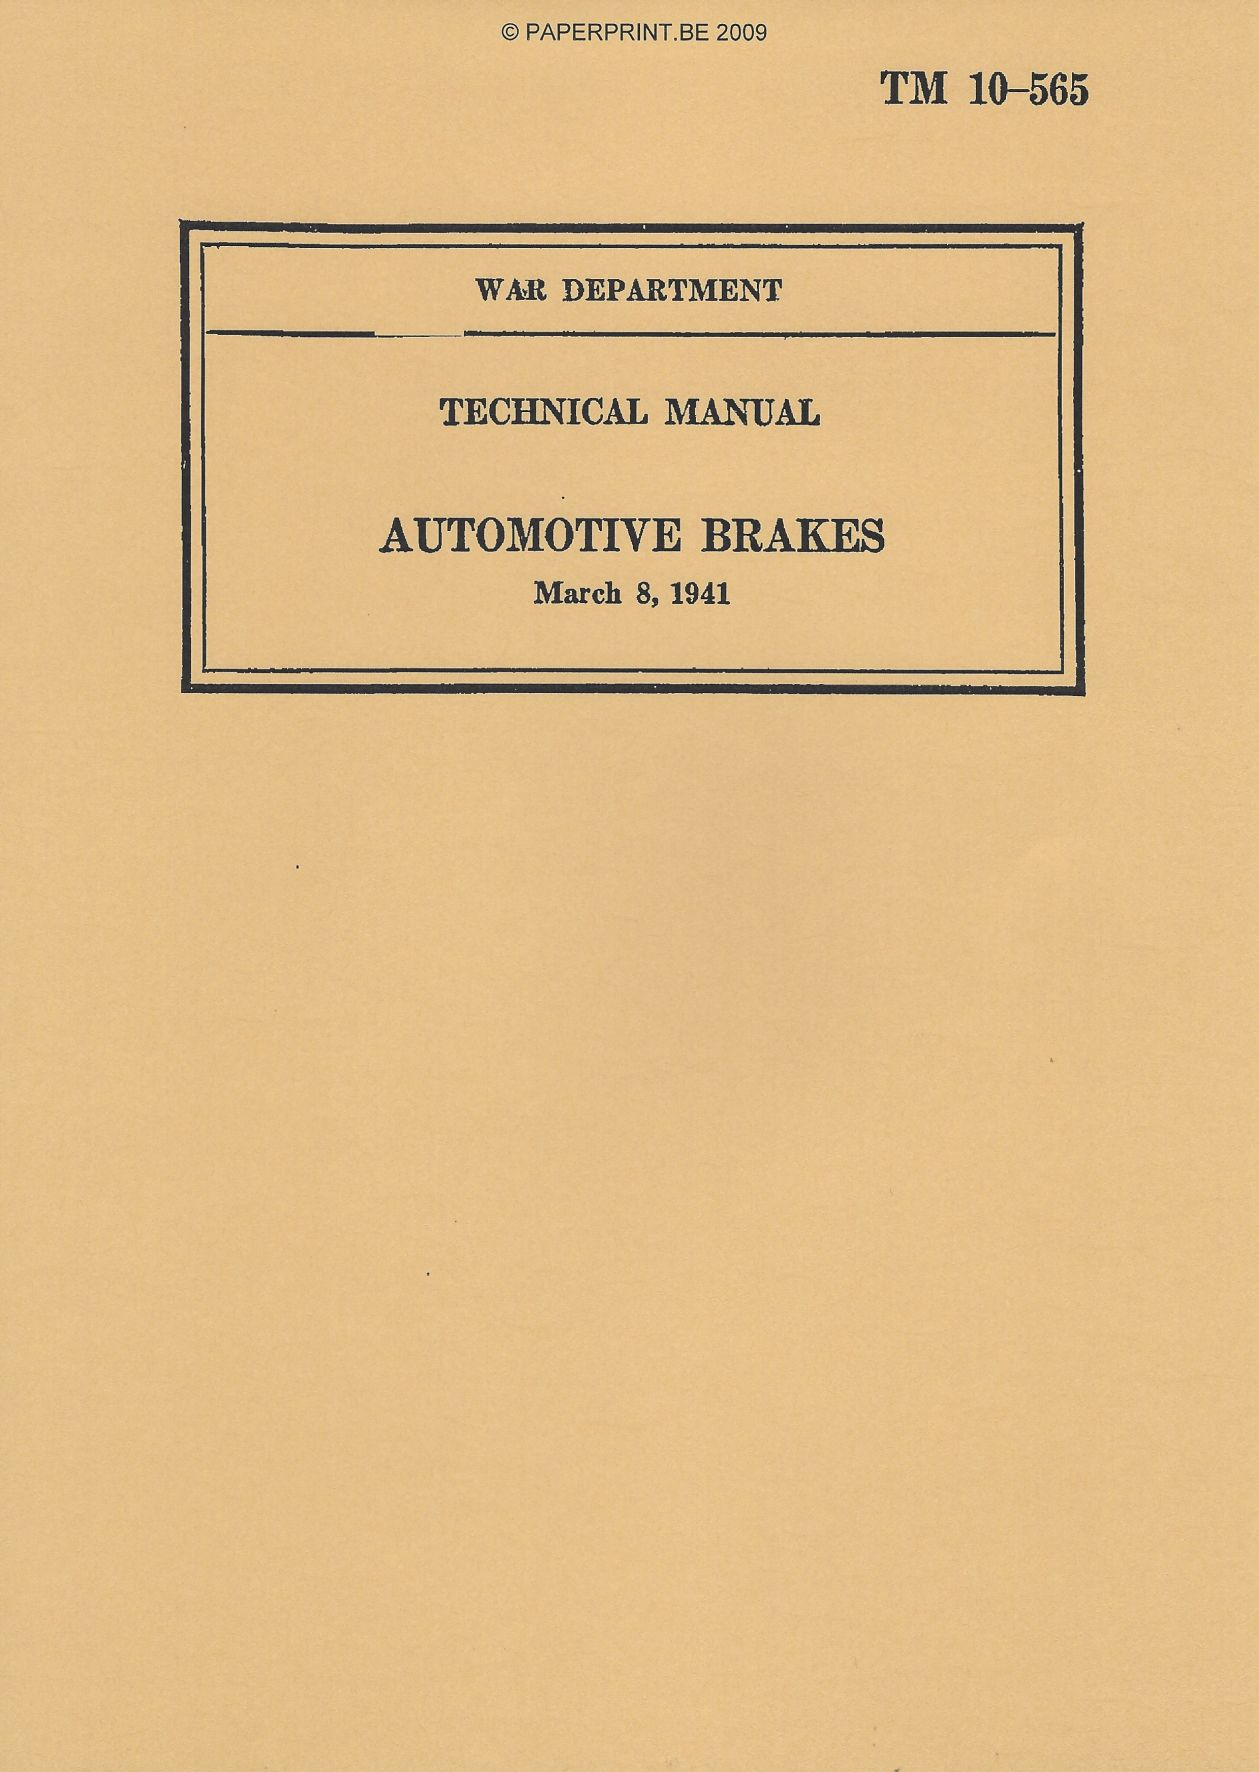 TM 10-565 US AUTOMOTIVE BRAKES